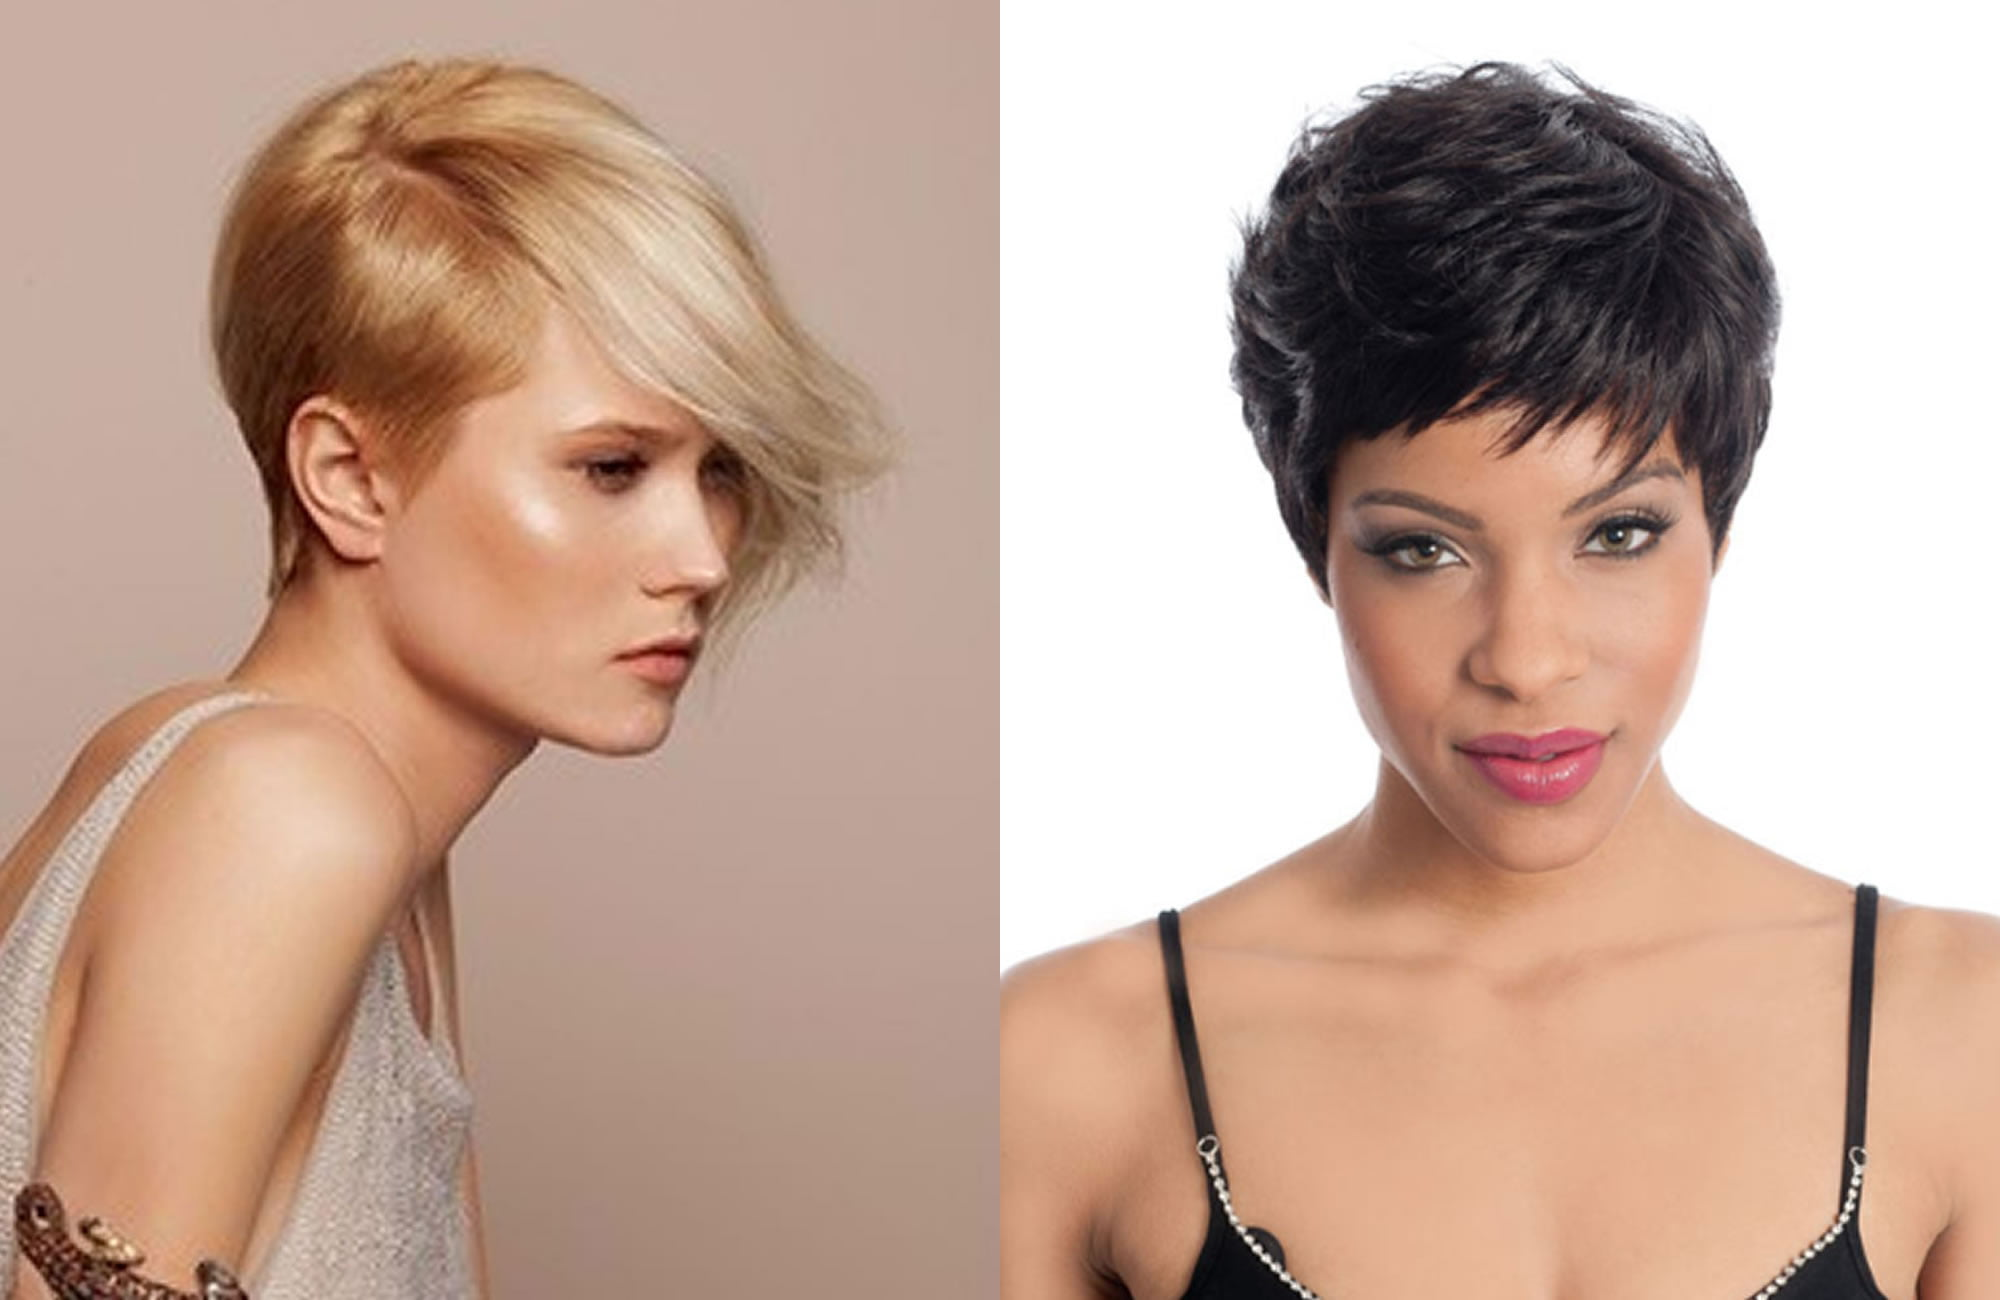 44 New Short Bob Amp Pixie Hairstyles For Women Haircuts